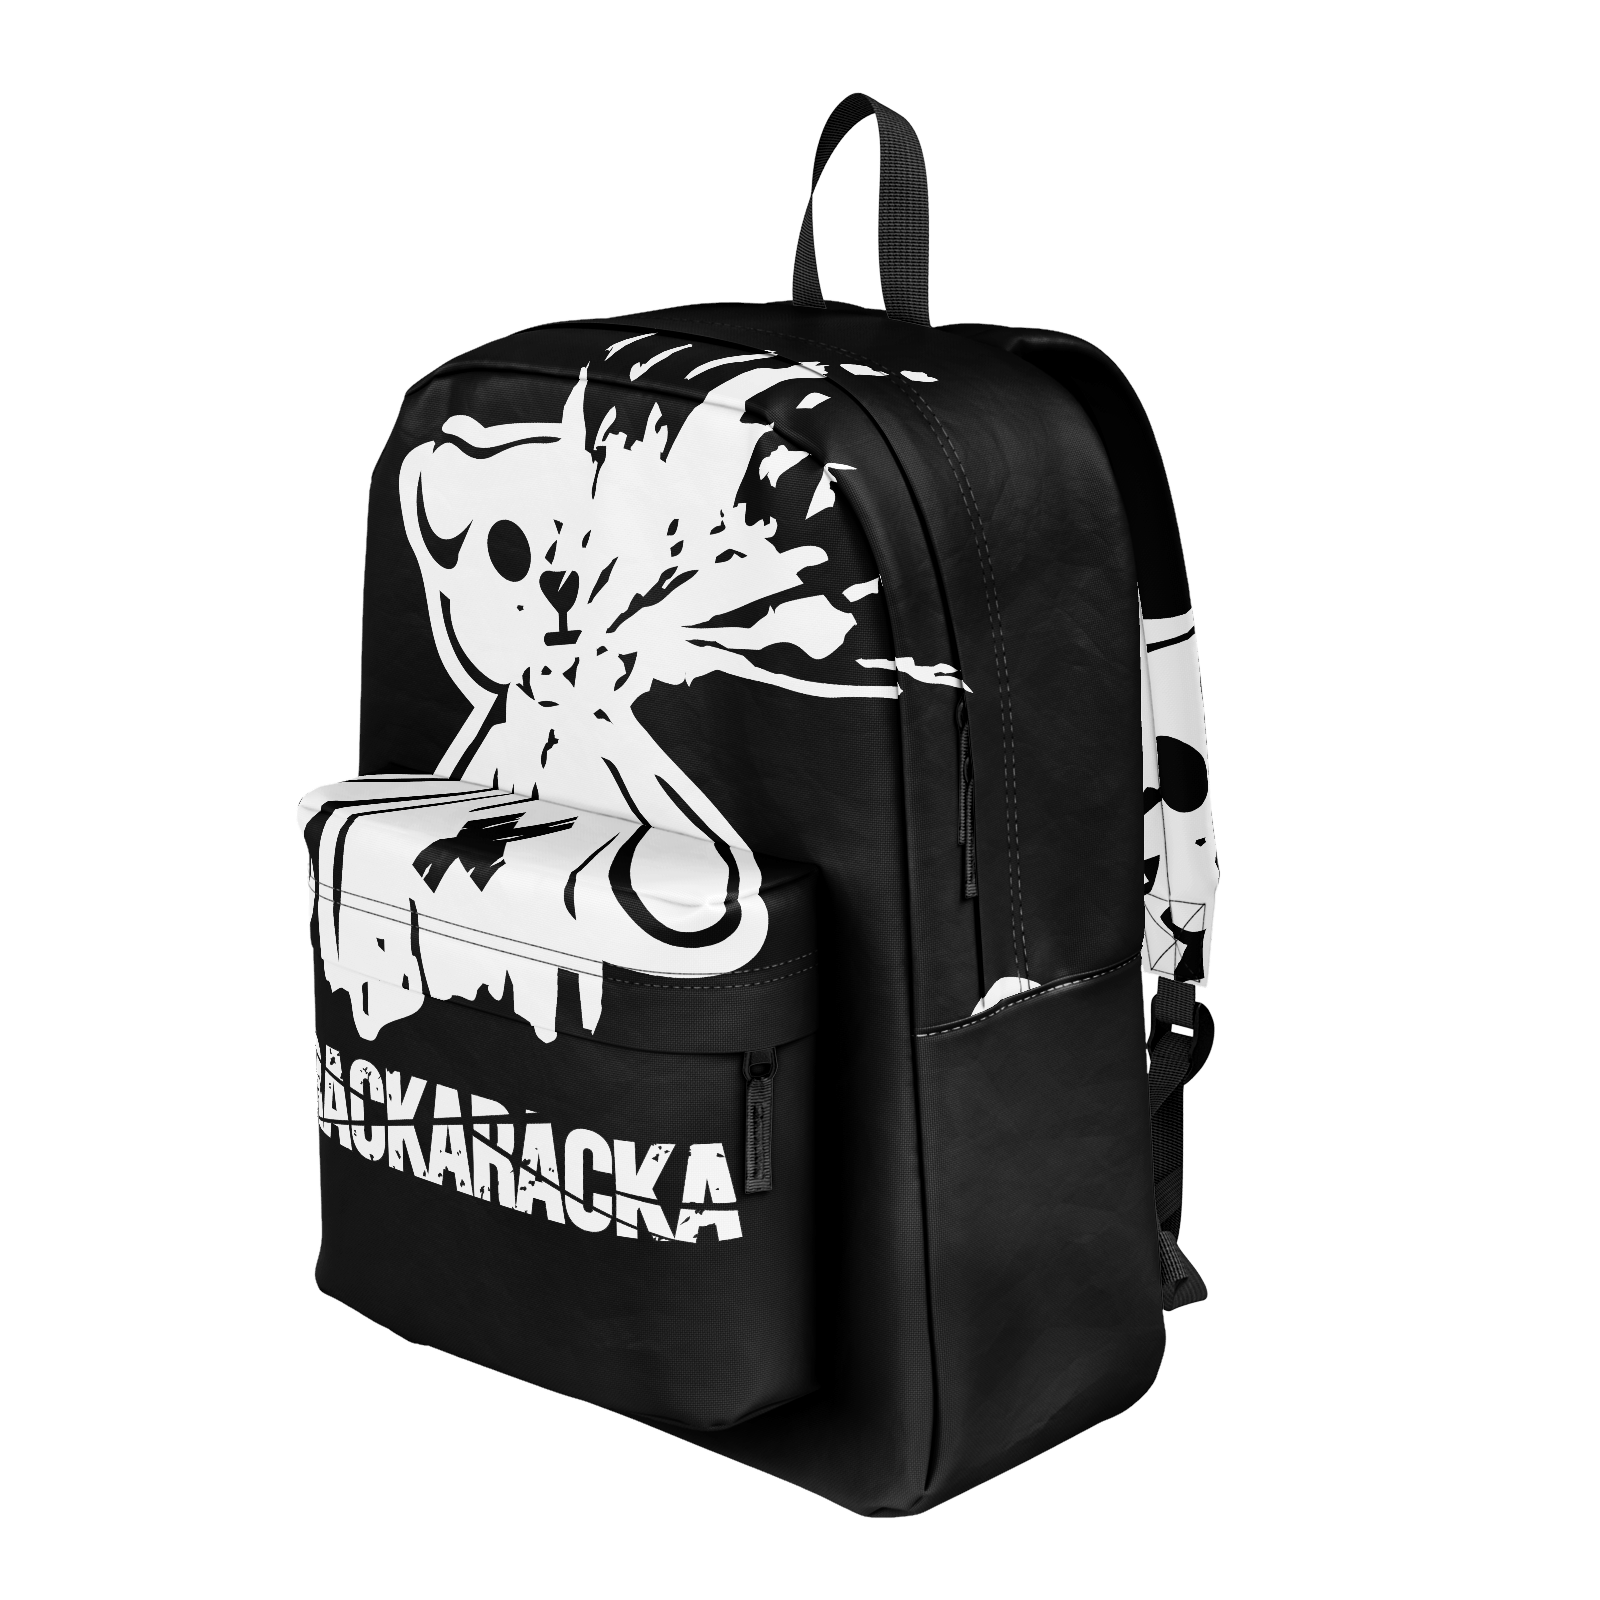 RackaRacka Black Backpack – Studio71 48bc3d85b4